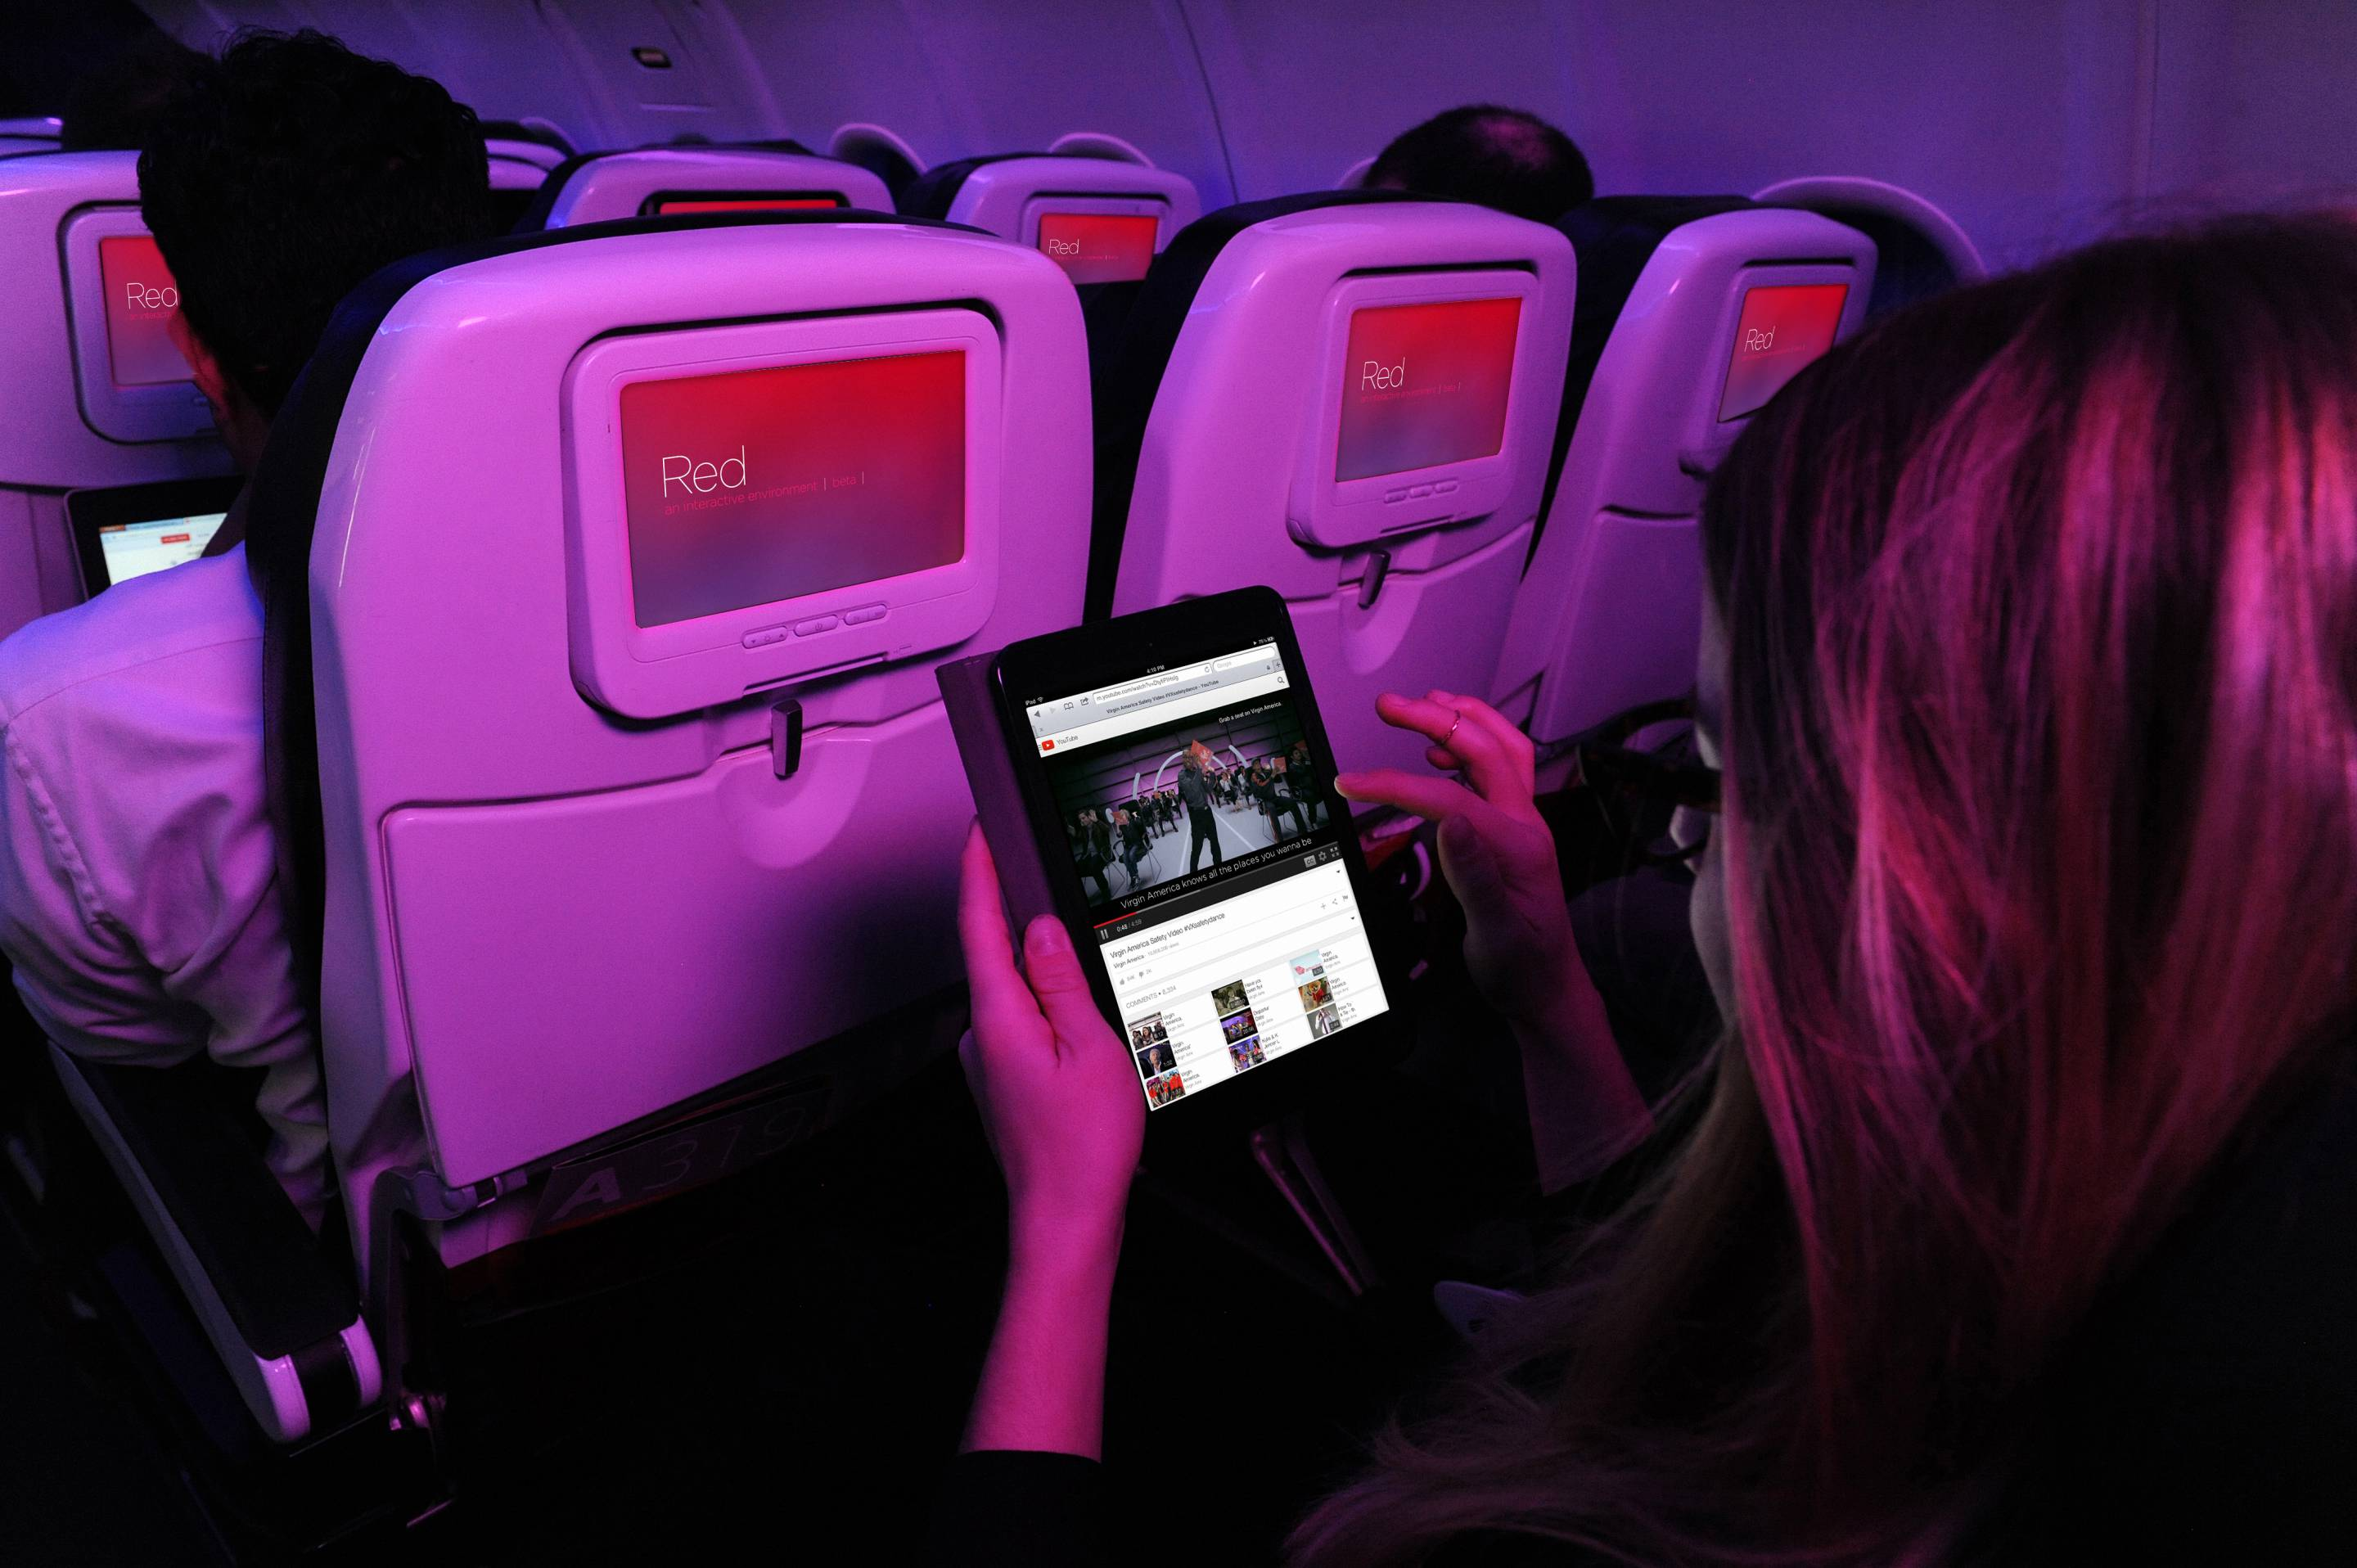 Virgin America has partnered with Viasat to launch faster inflight Wi-Fi that allows for high quality video streaming.